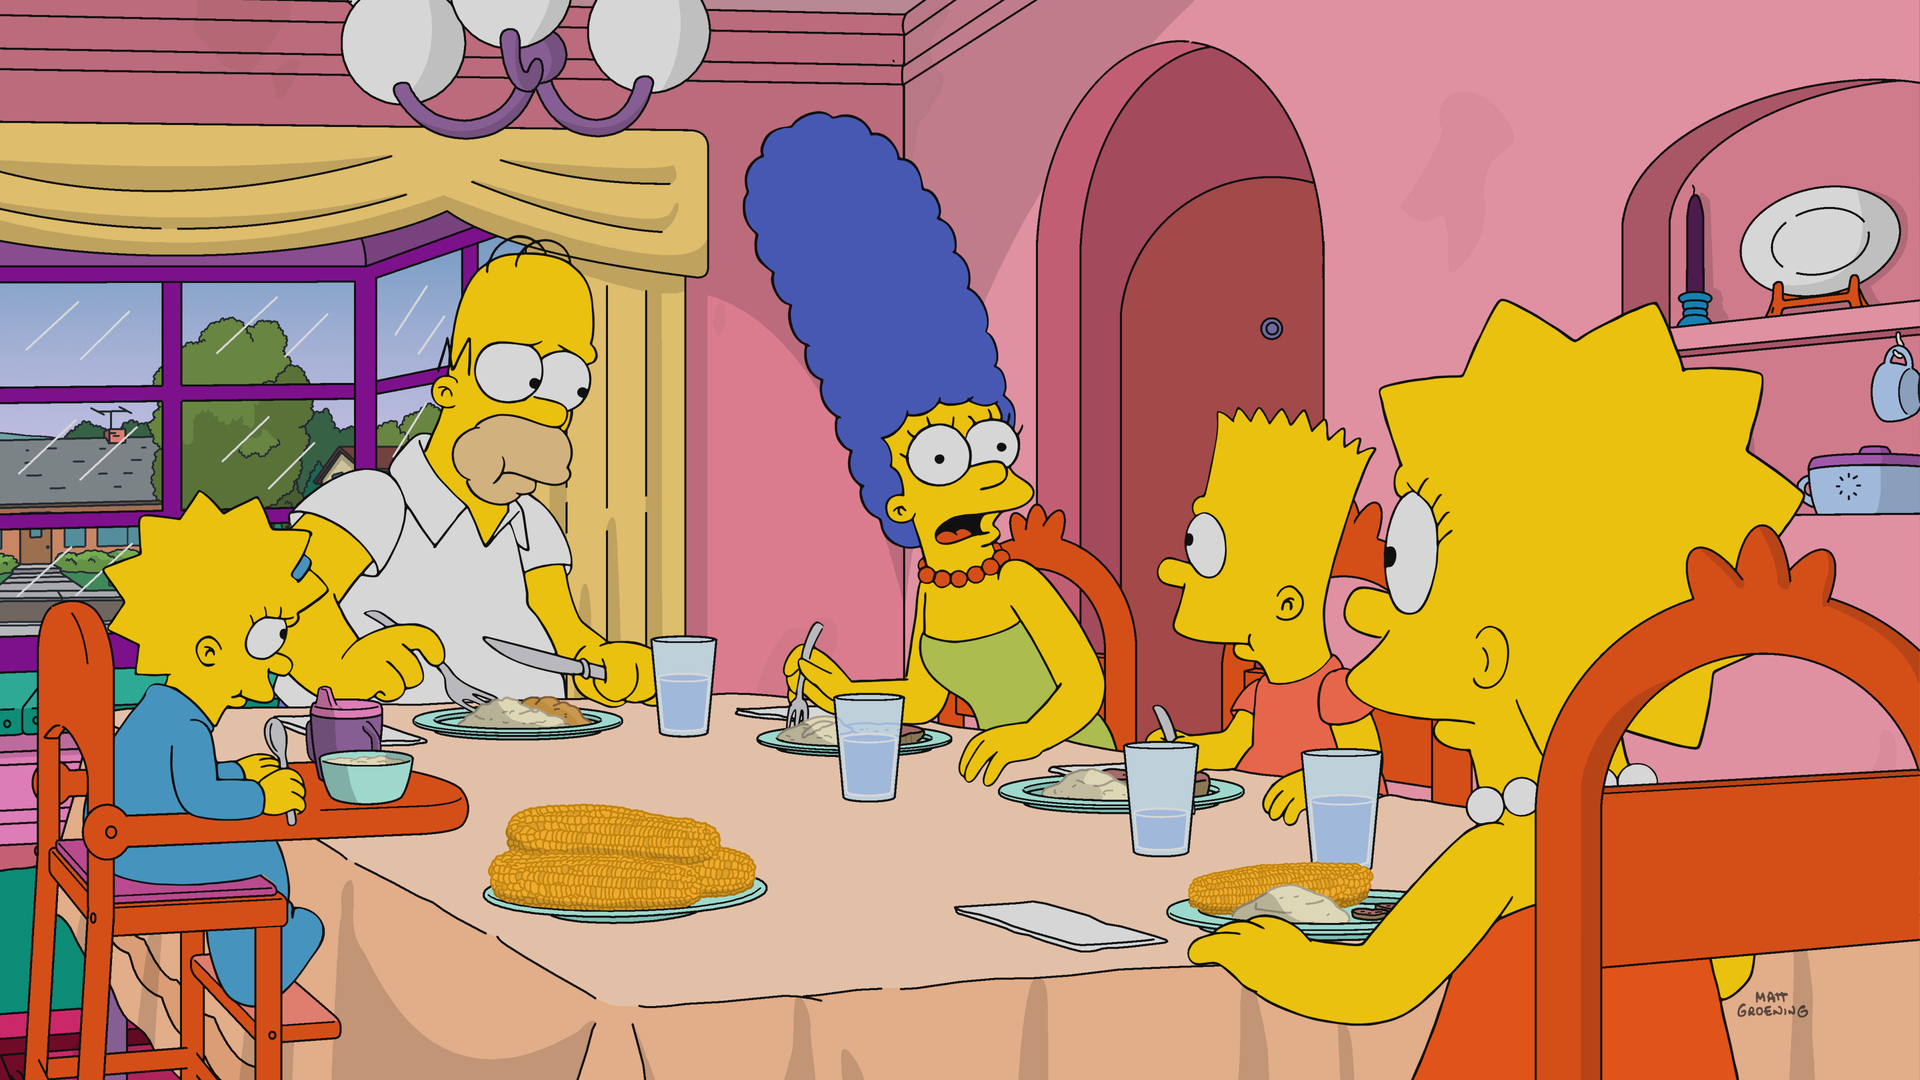 'The Simpsons' Season Premiere Has Better Messaging on Puerto Rico Than Trump